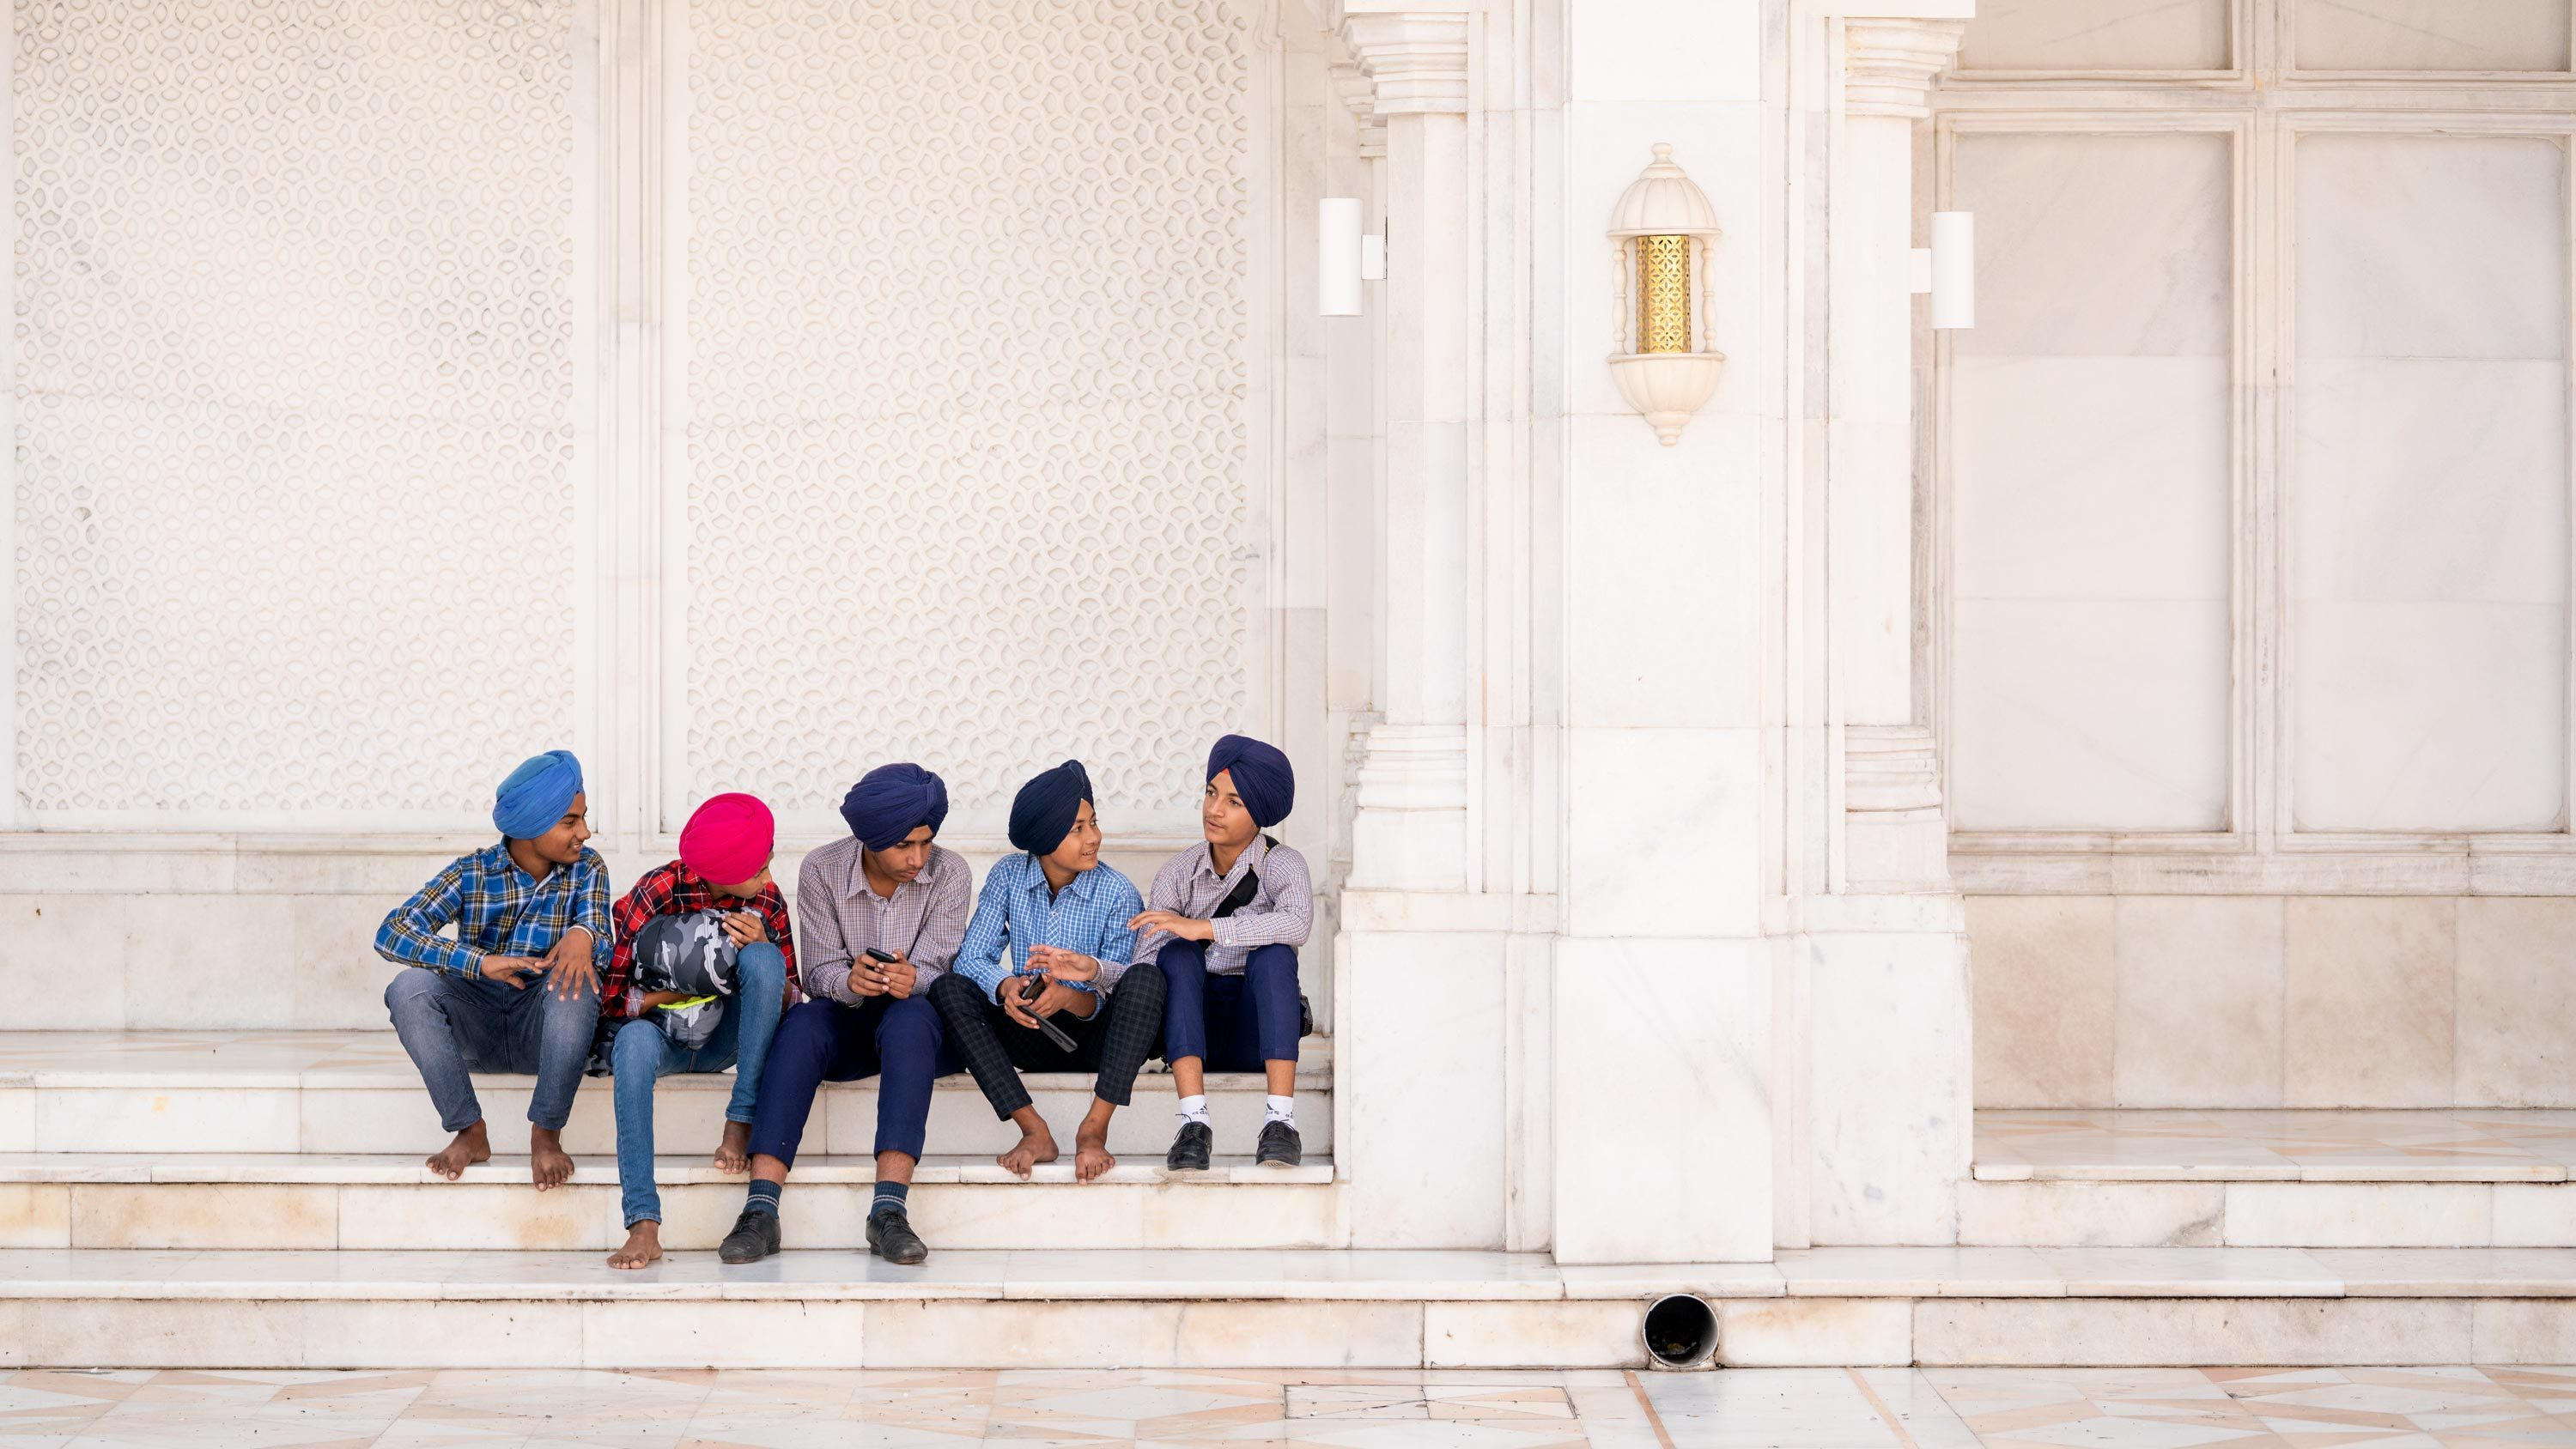 A group of boys in western clothes and turbans in a row on white marble steps